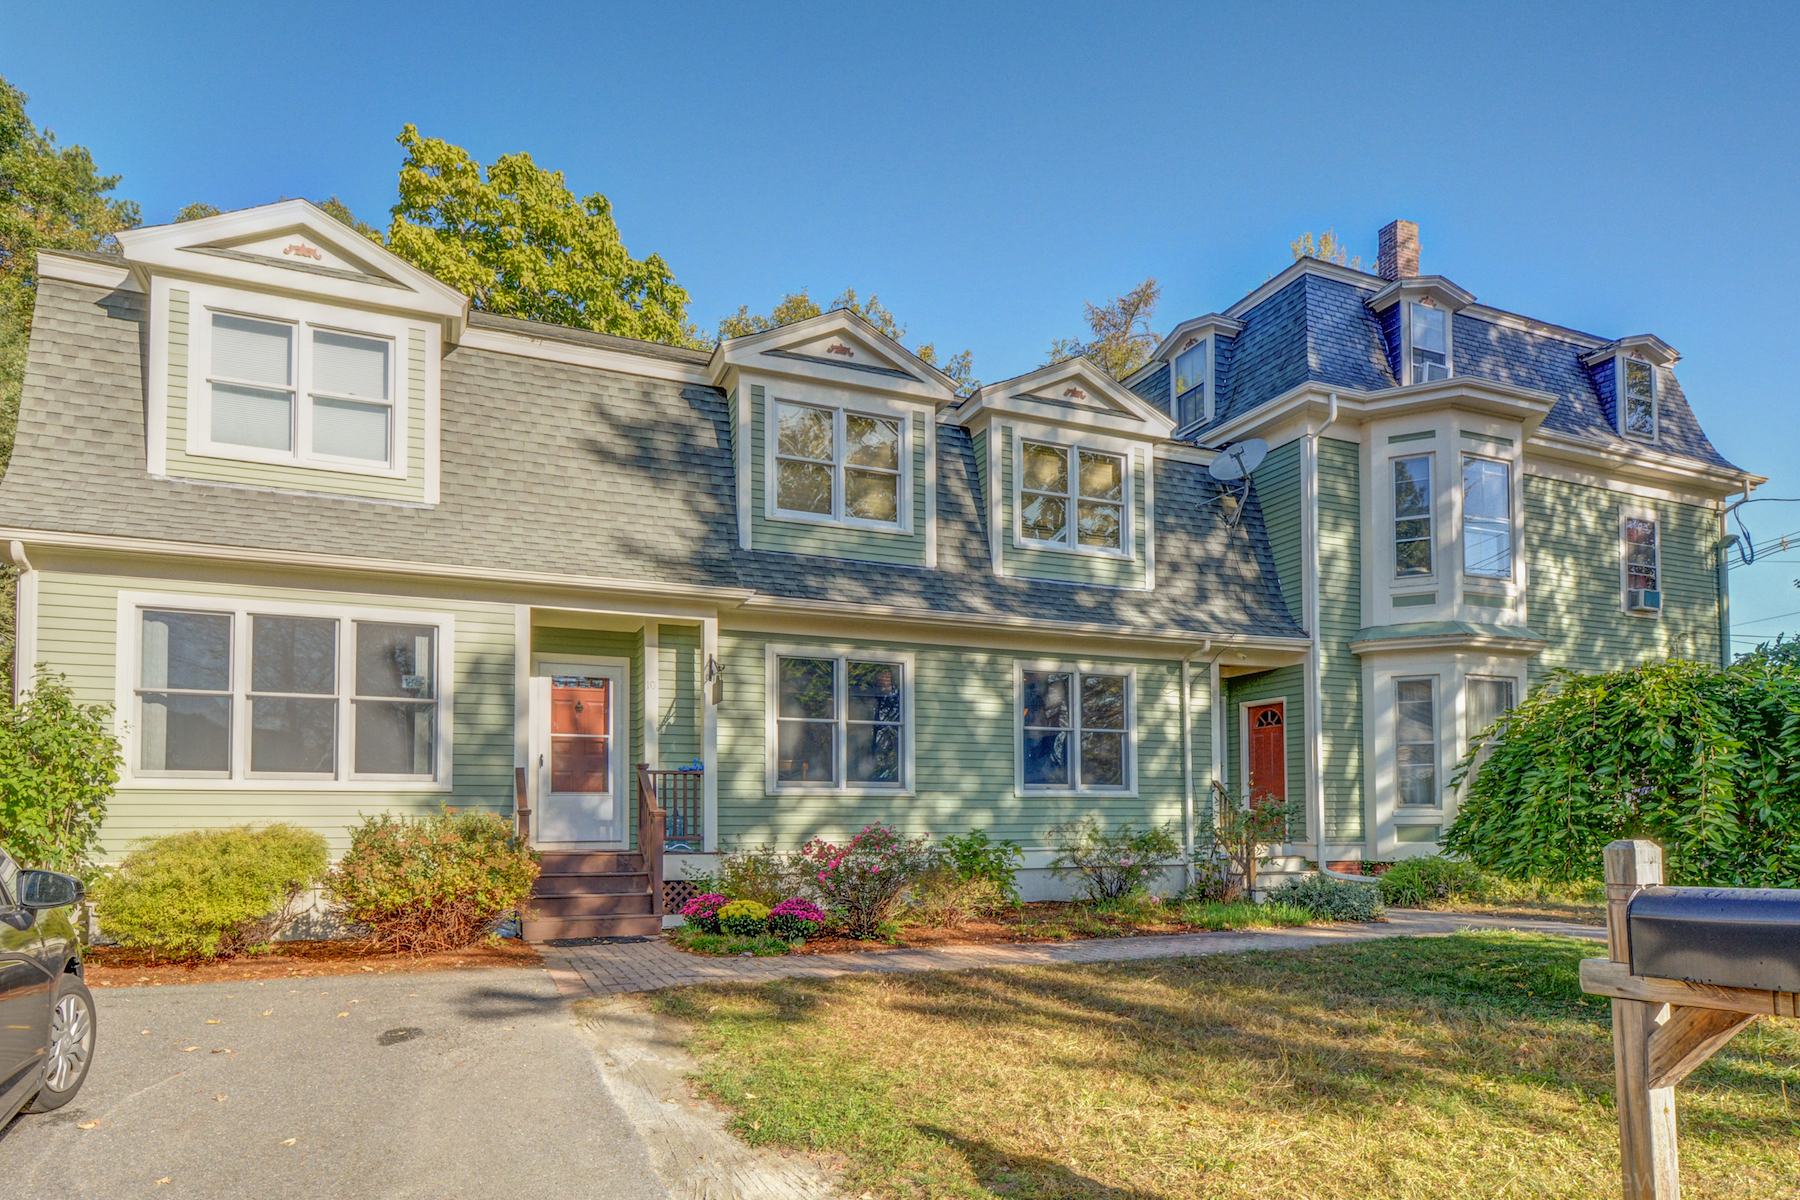 Single Family Home for Sale at This attached home lives and feels like a single family 10 Highland St, Concord, Massachusetts, 01742 United States